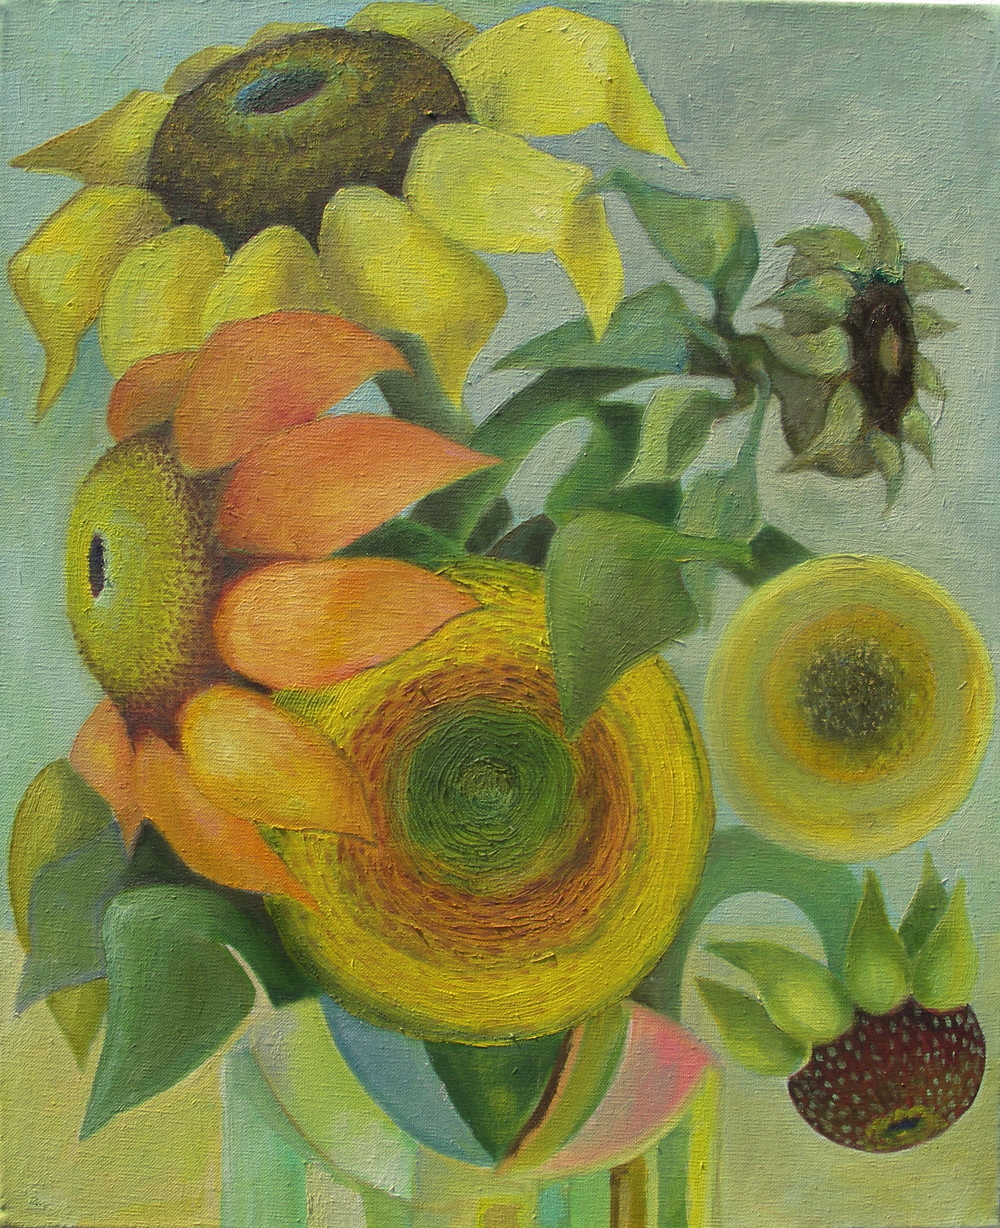 Sunflowers I  [38cmx48cm] oil on canvas, 2011 SOLD